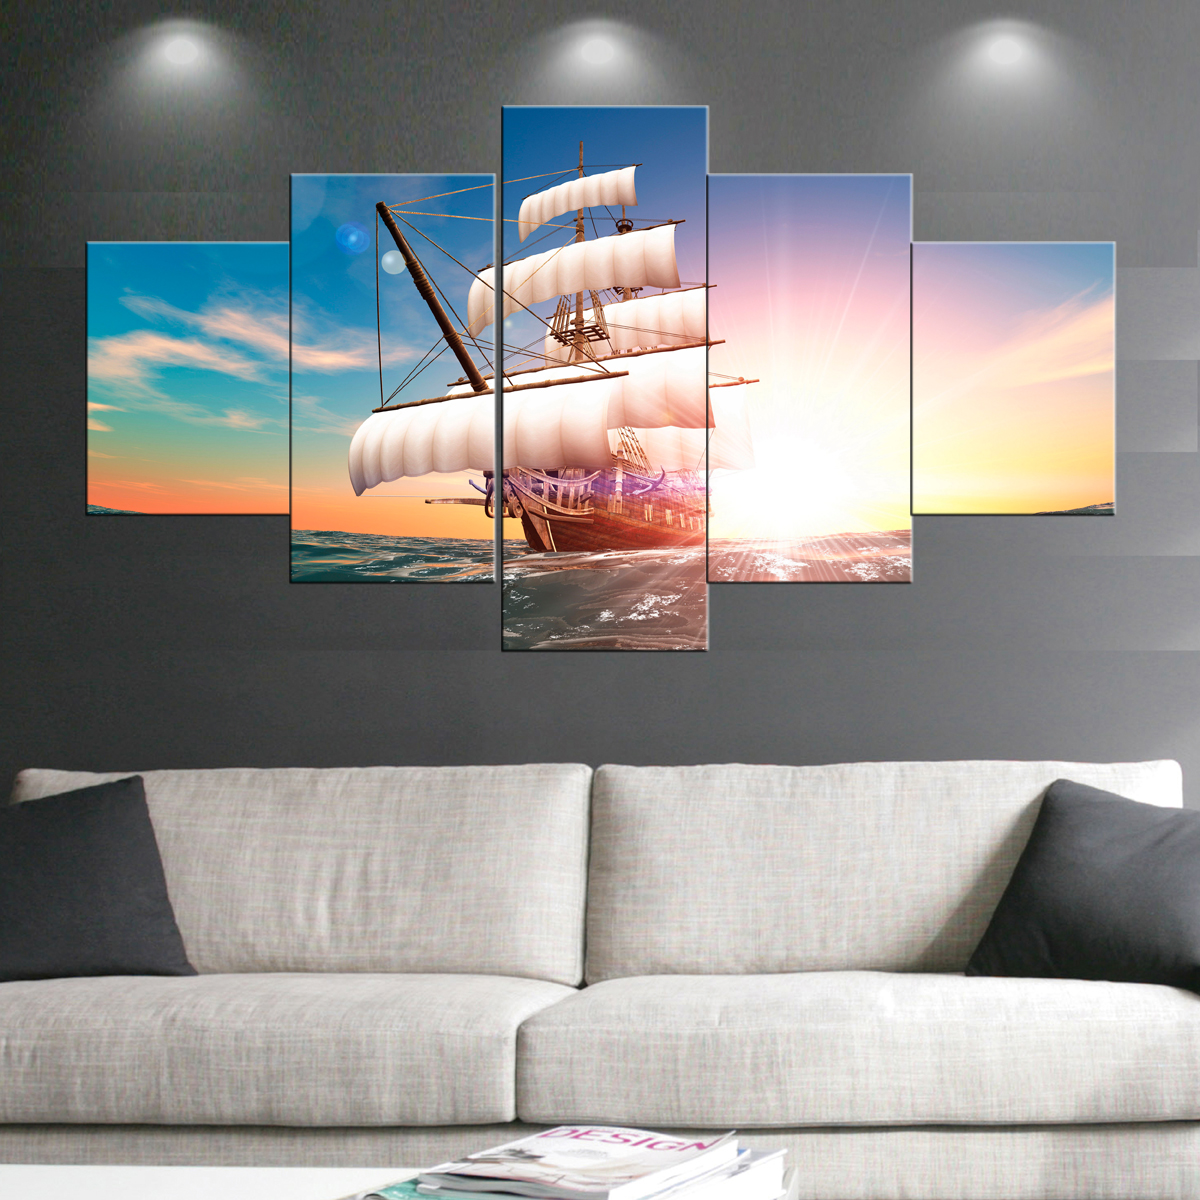 Boat Sail Paintings Wall Art Giclee Canvas Prints Landscape Pictures Paintings on Canvas Stretched and Framed Ready to Hang